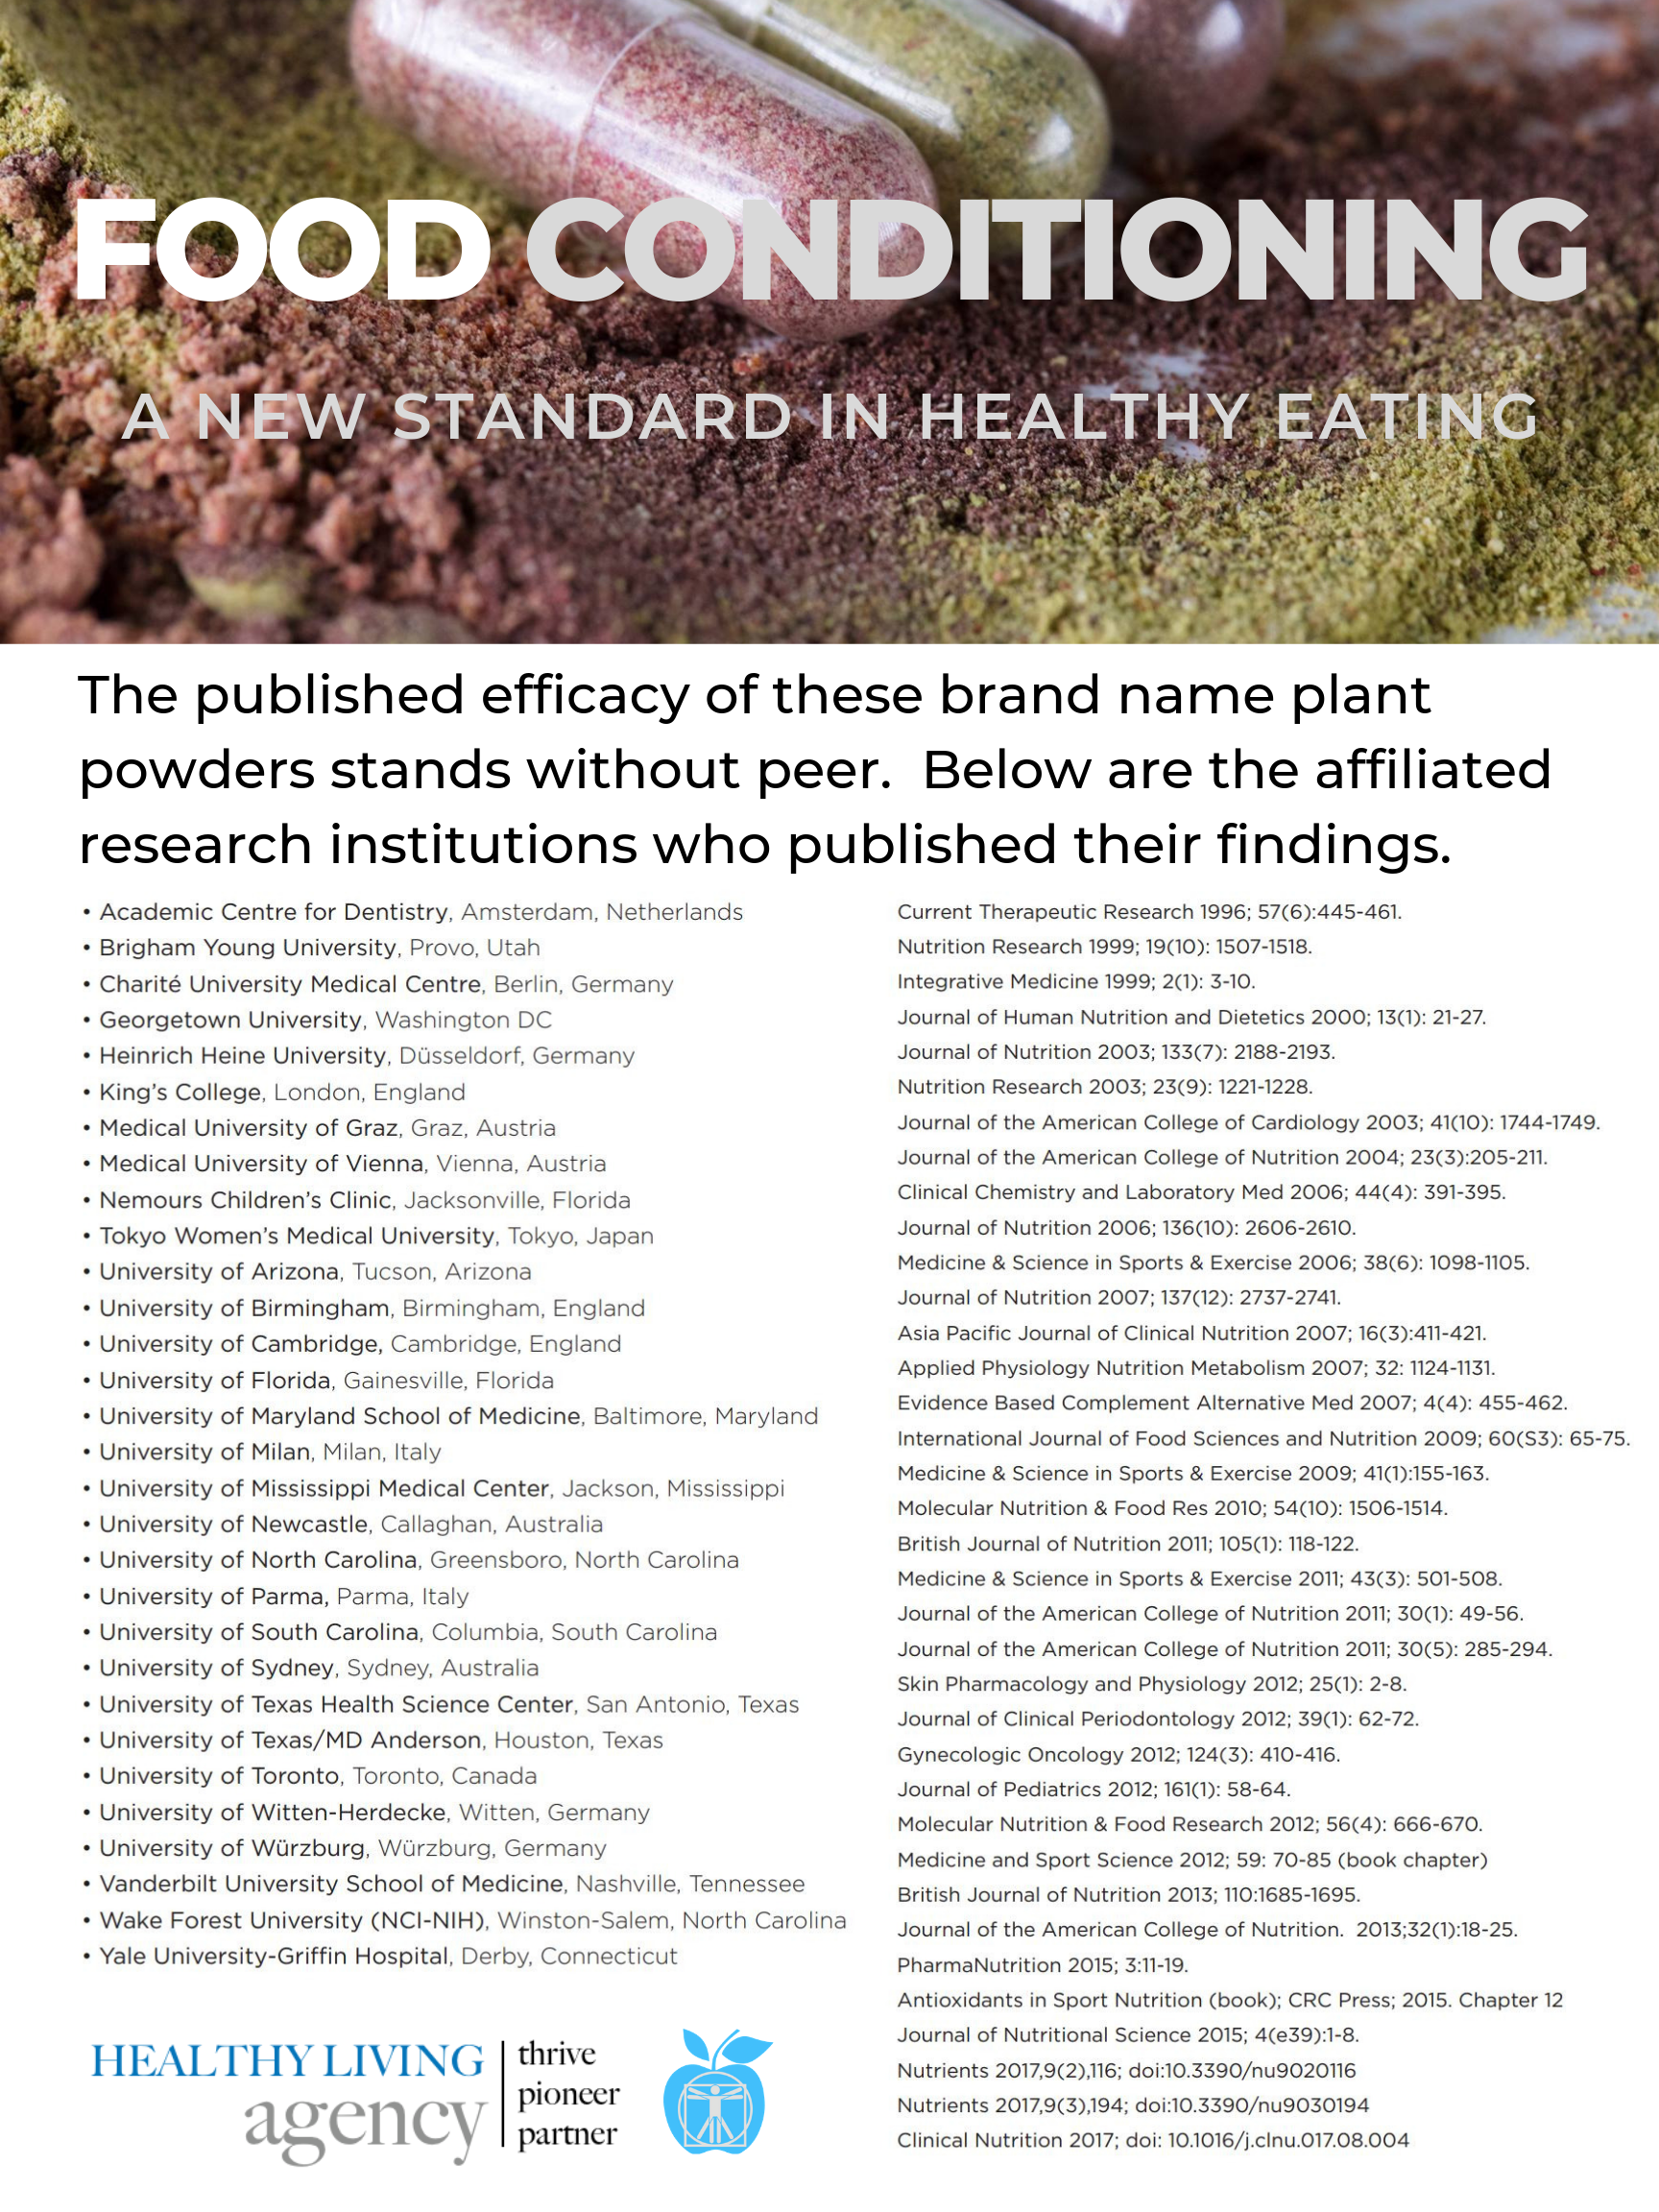 FC with plant powders - JP published efficacy.png